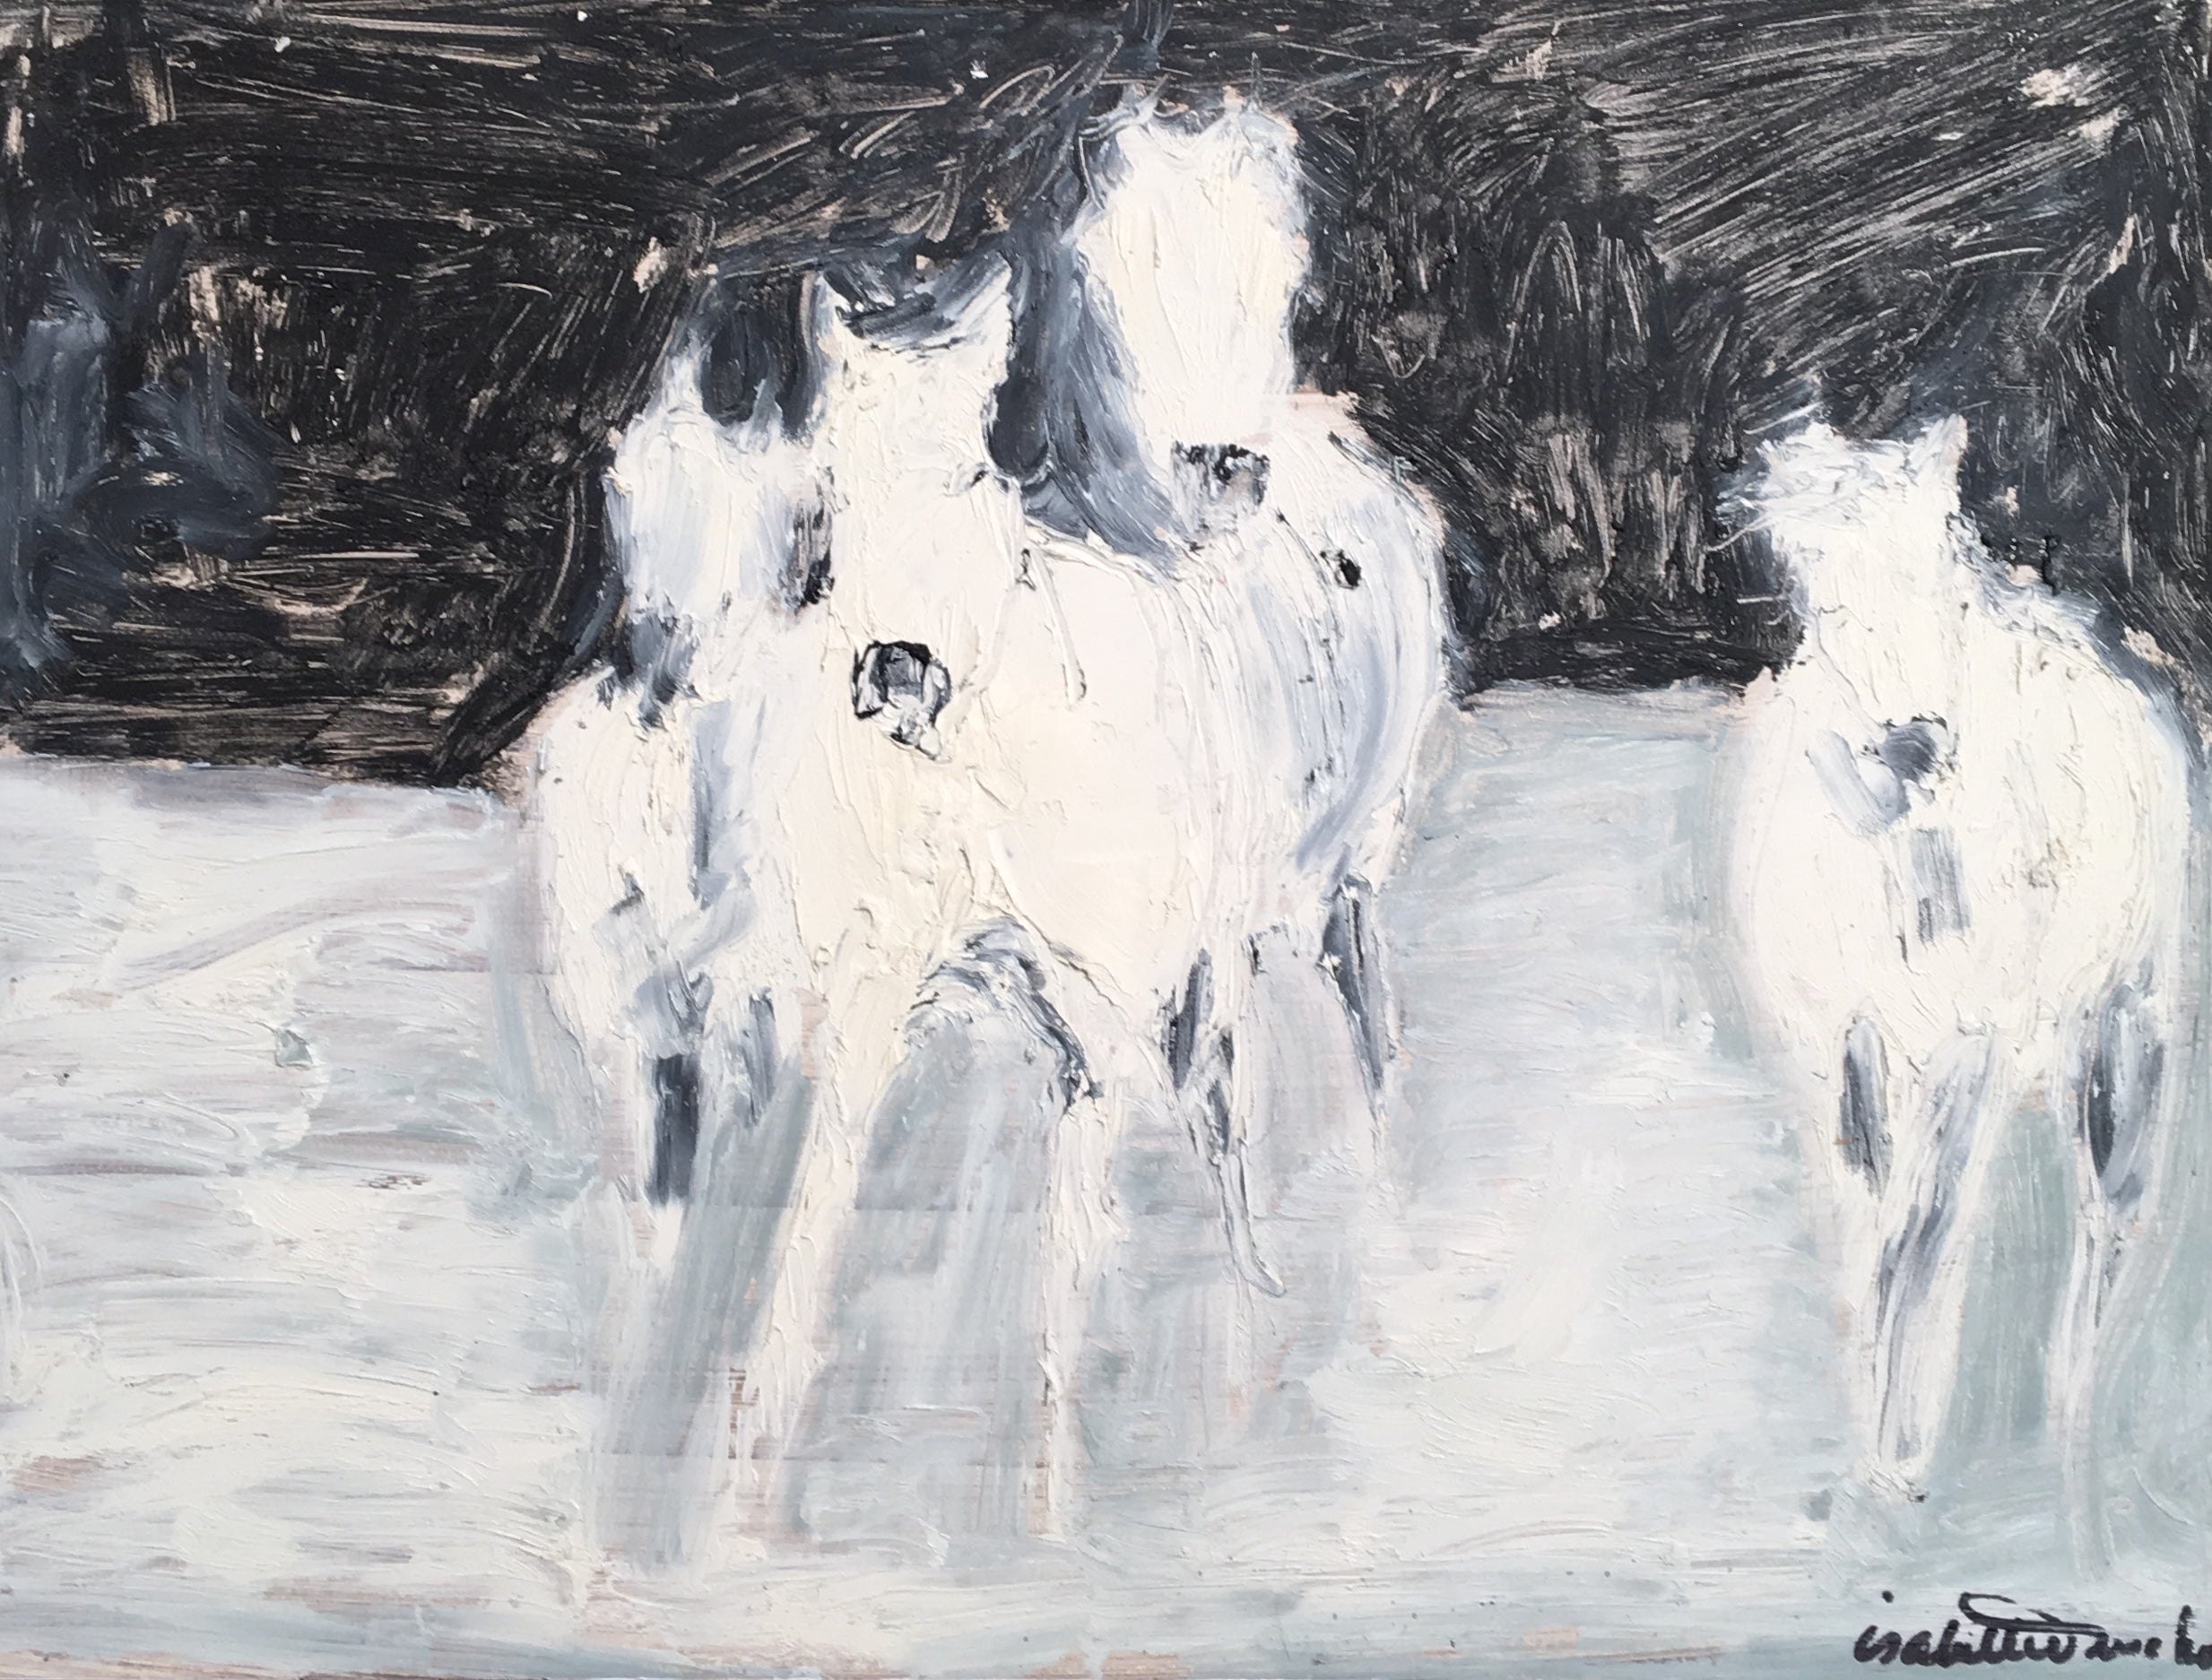 Inspired by the beautiful horses of the Camargue, this highly textured oil original exudes energy in abstraction of the horse form galloping in the waters of the Rhone delta. Third in a series of three.